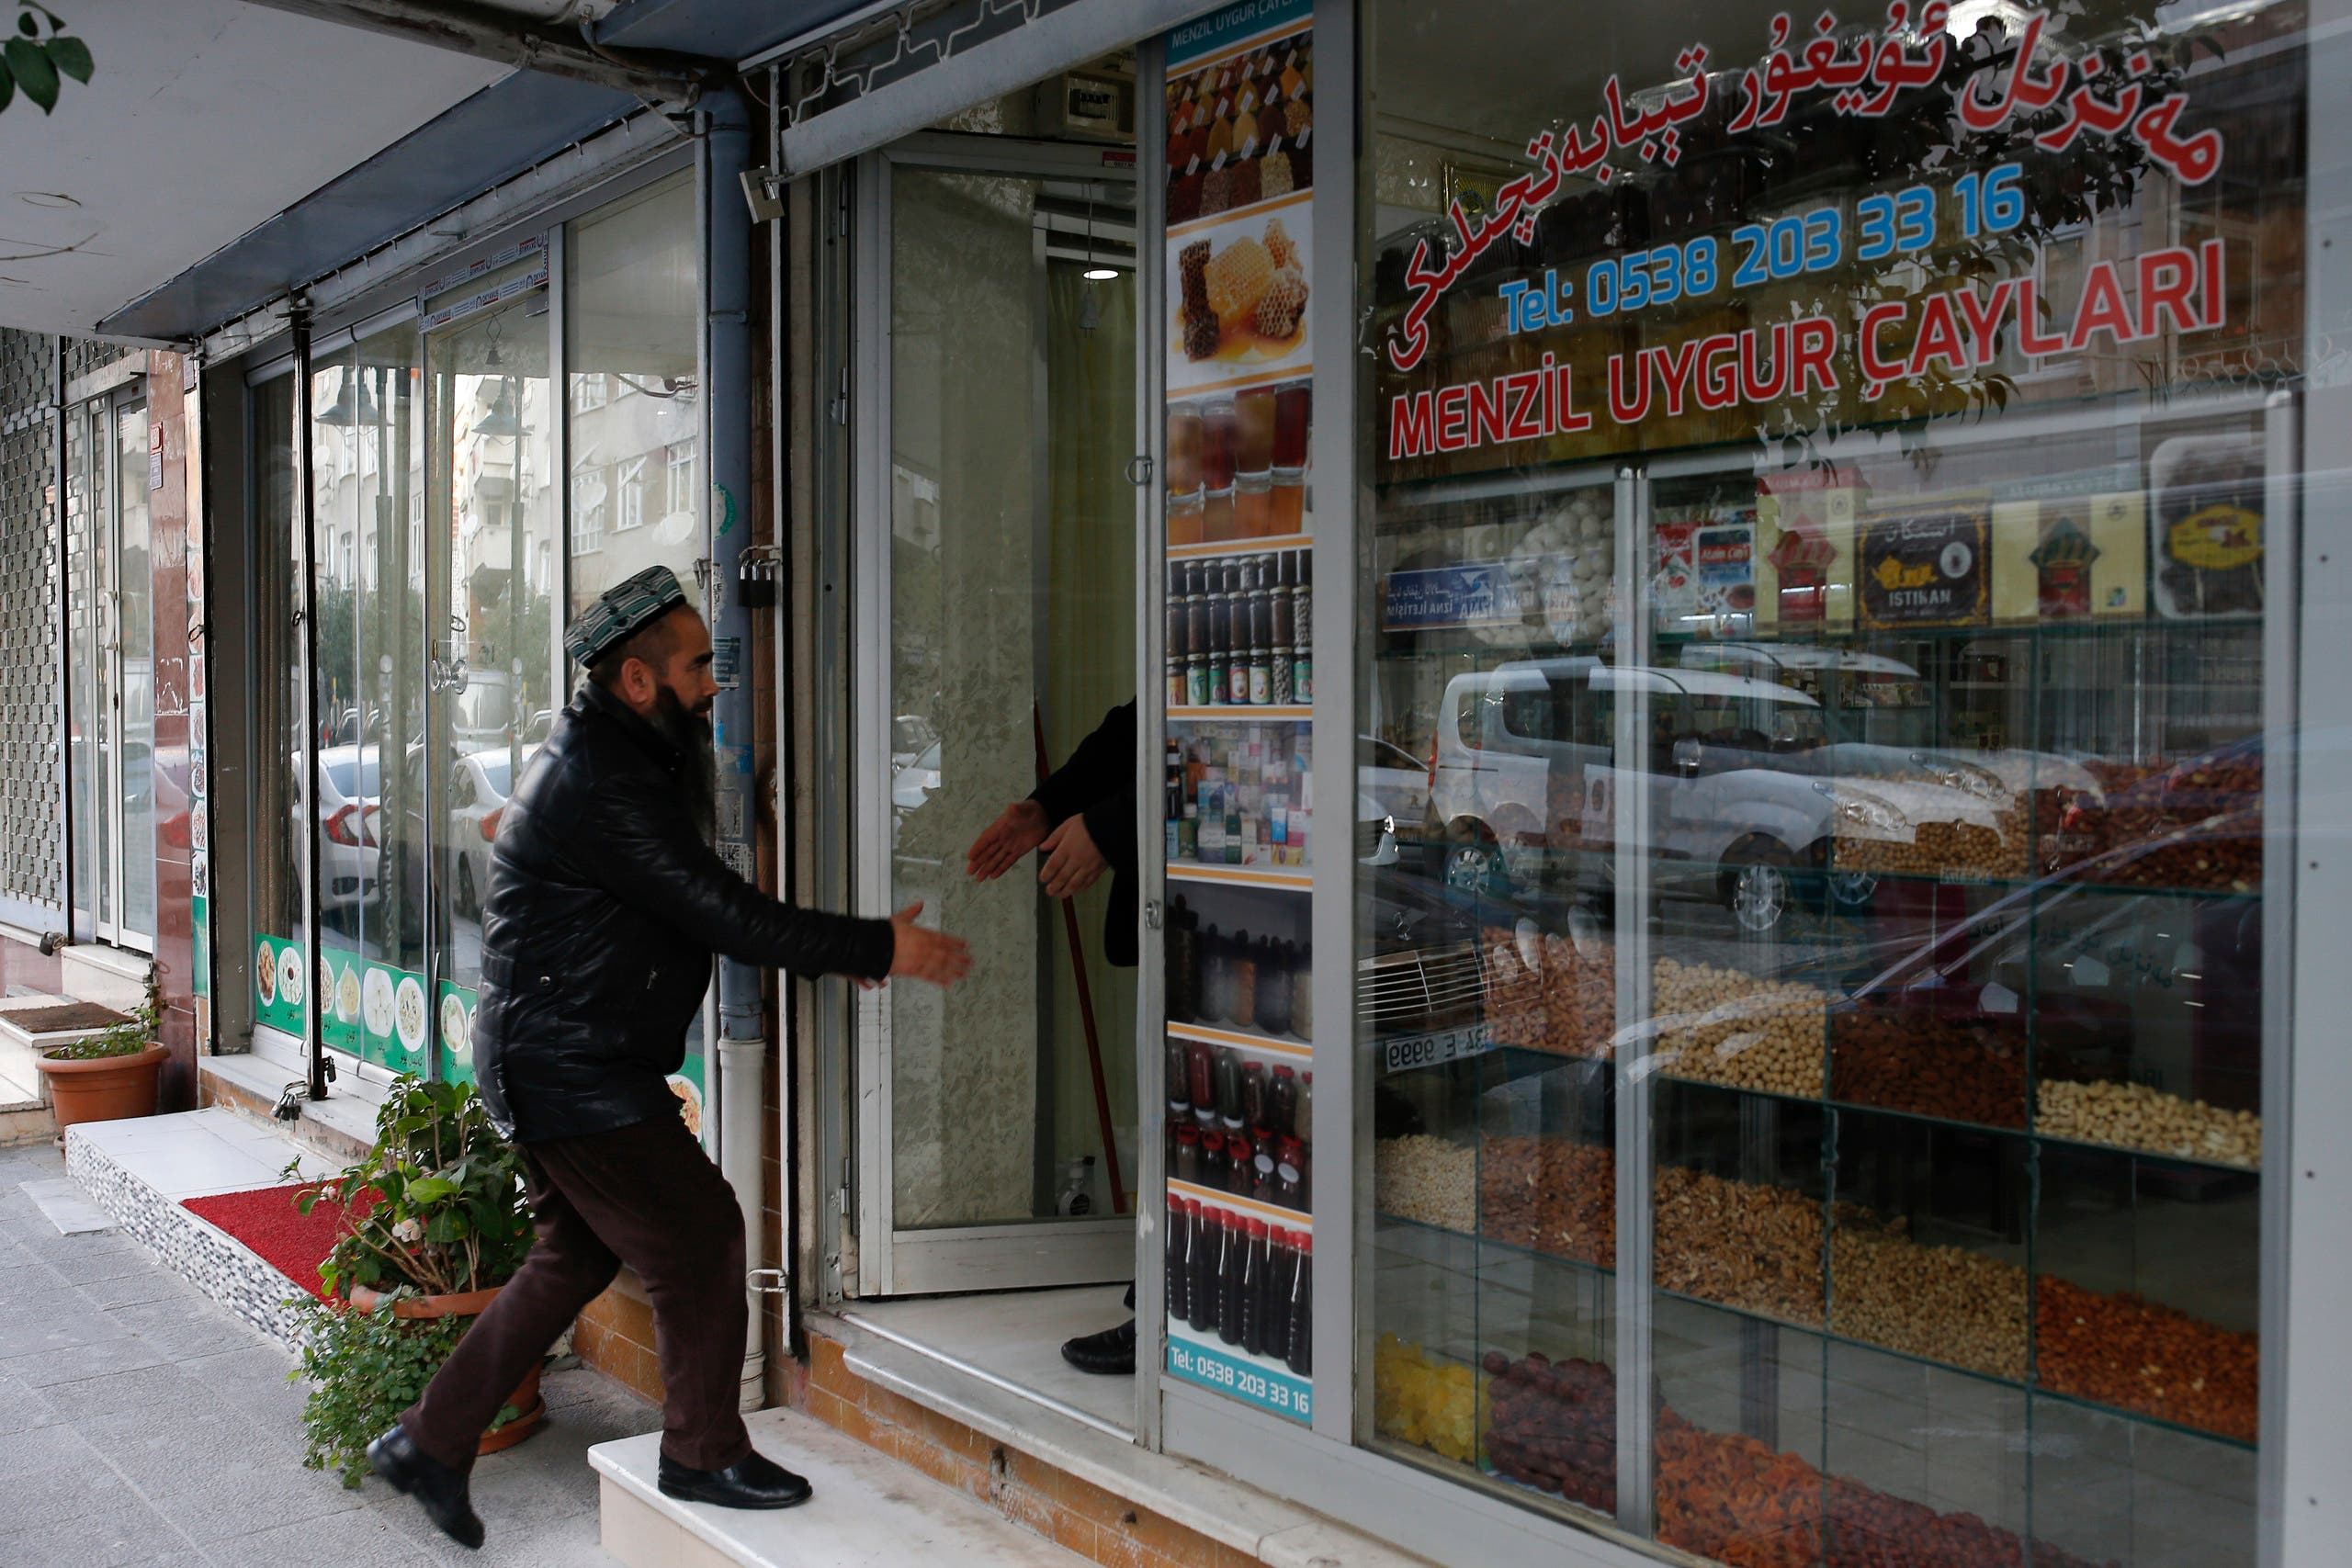 A man enters a halal restaurant in china (AP)